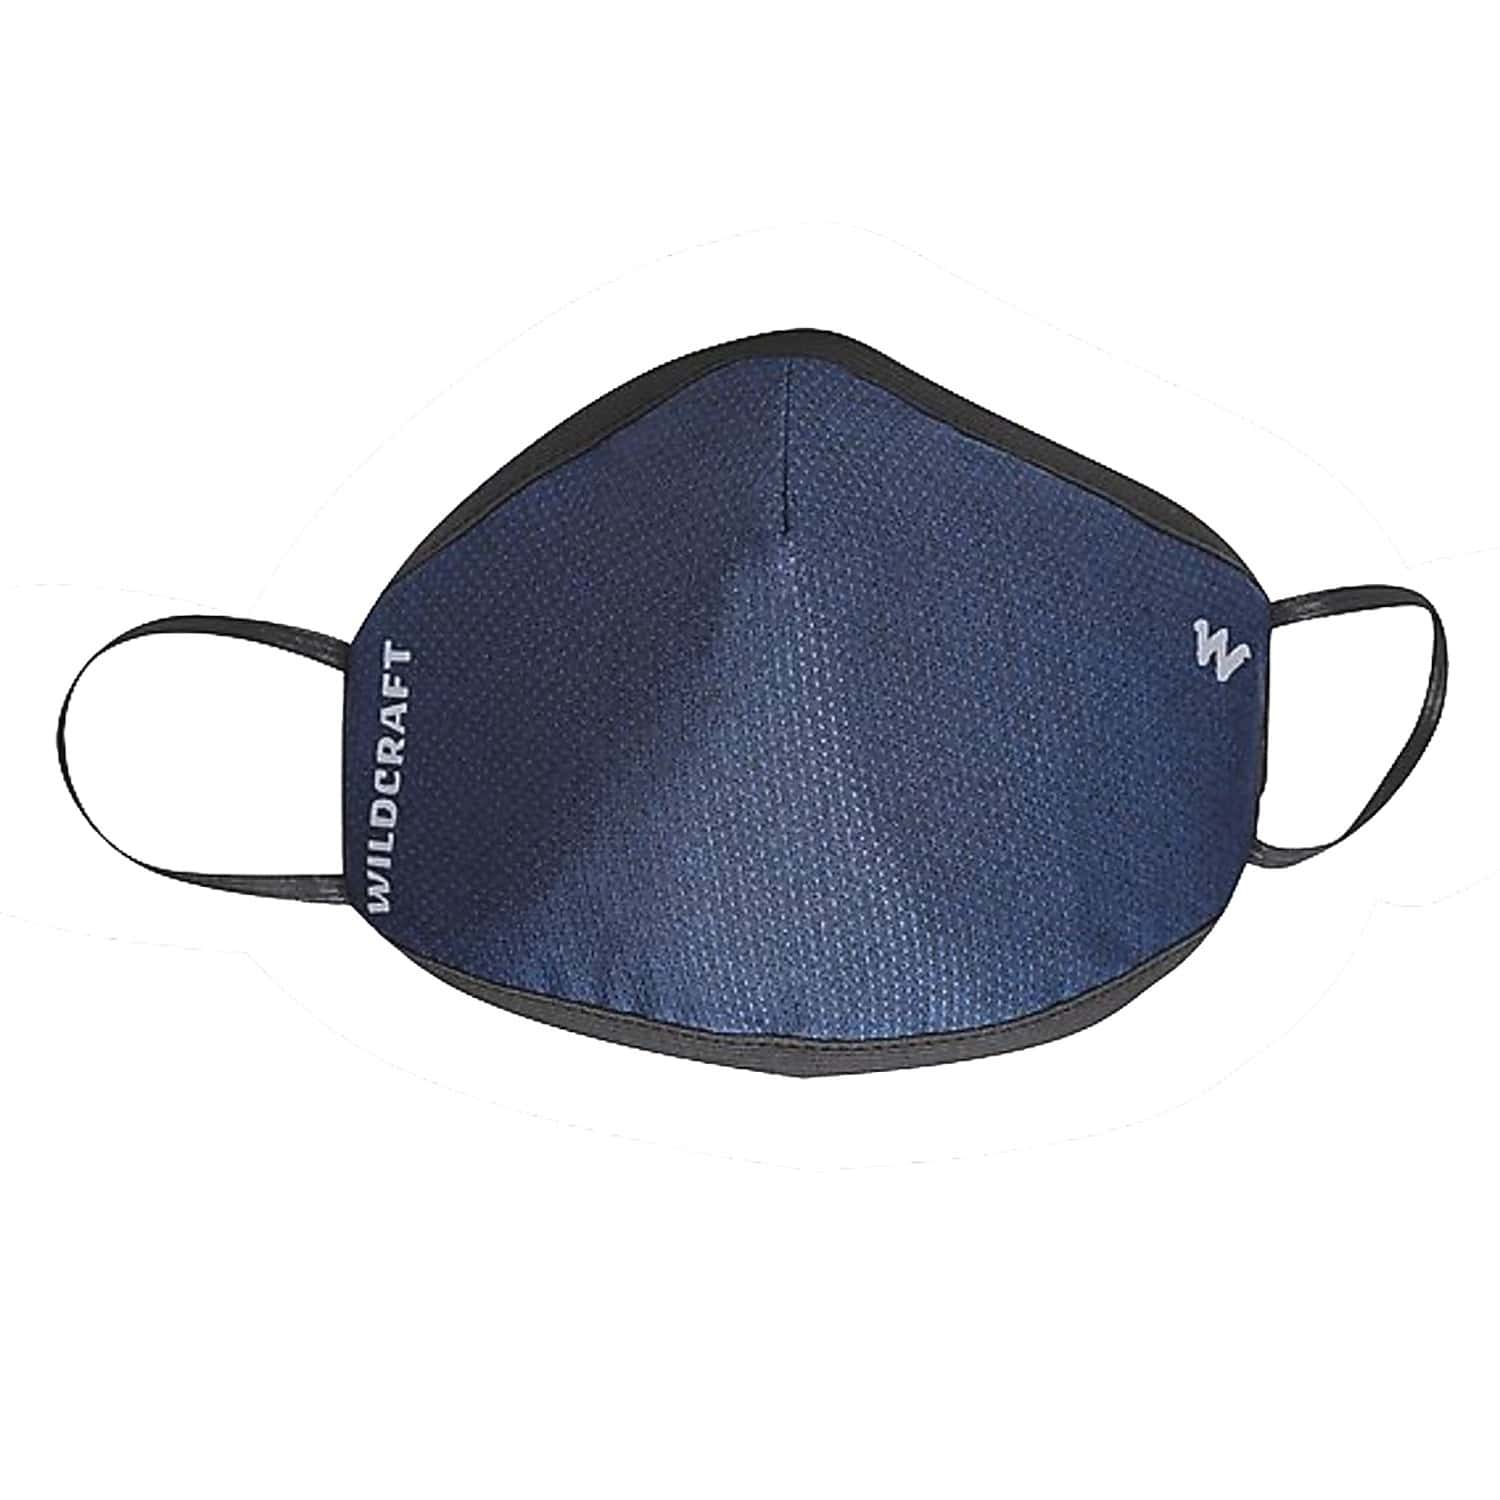 Wildcraft Supermask W95+ Reusable Outdoor Respirator Face Mask Anti-dust| Anti-bacterial | Anti-pollution- Size M (blue)